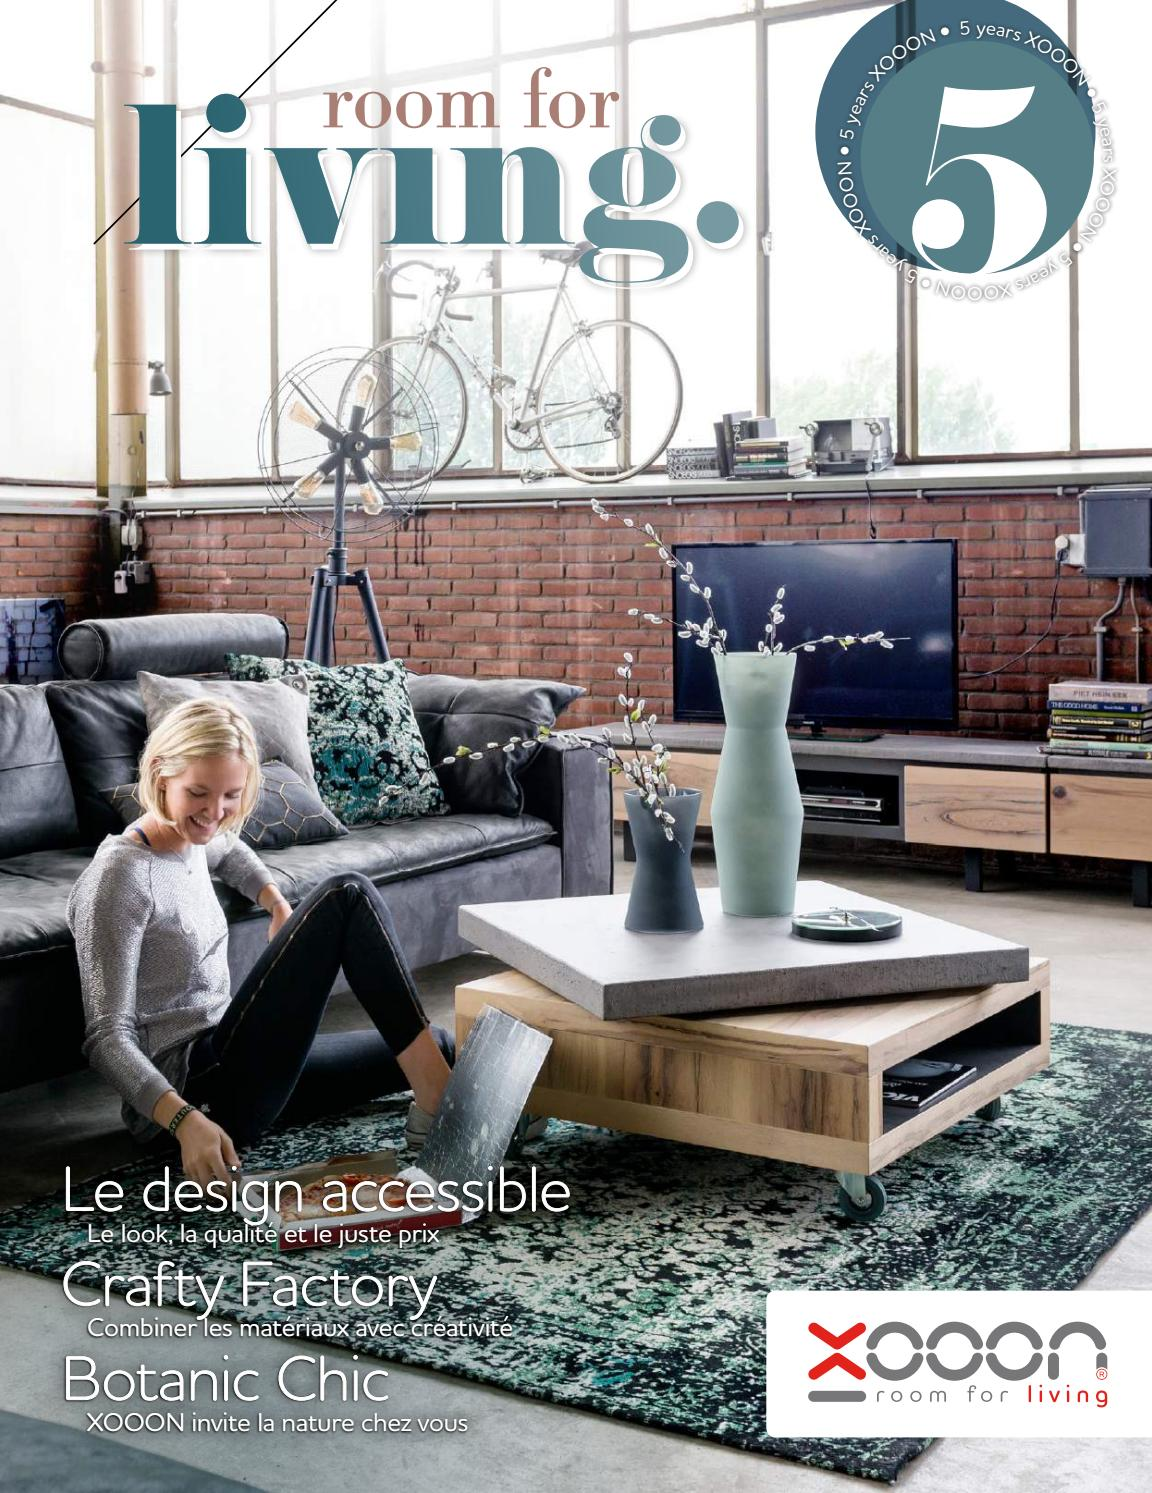 Xooon Fauteuils Xooon France Lookbook Catalogue 2016 2017 By Abitare Living Issuu